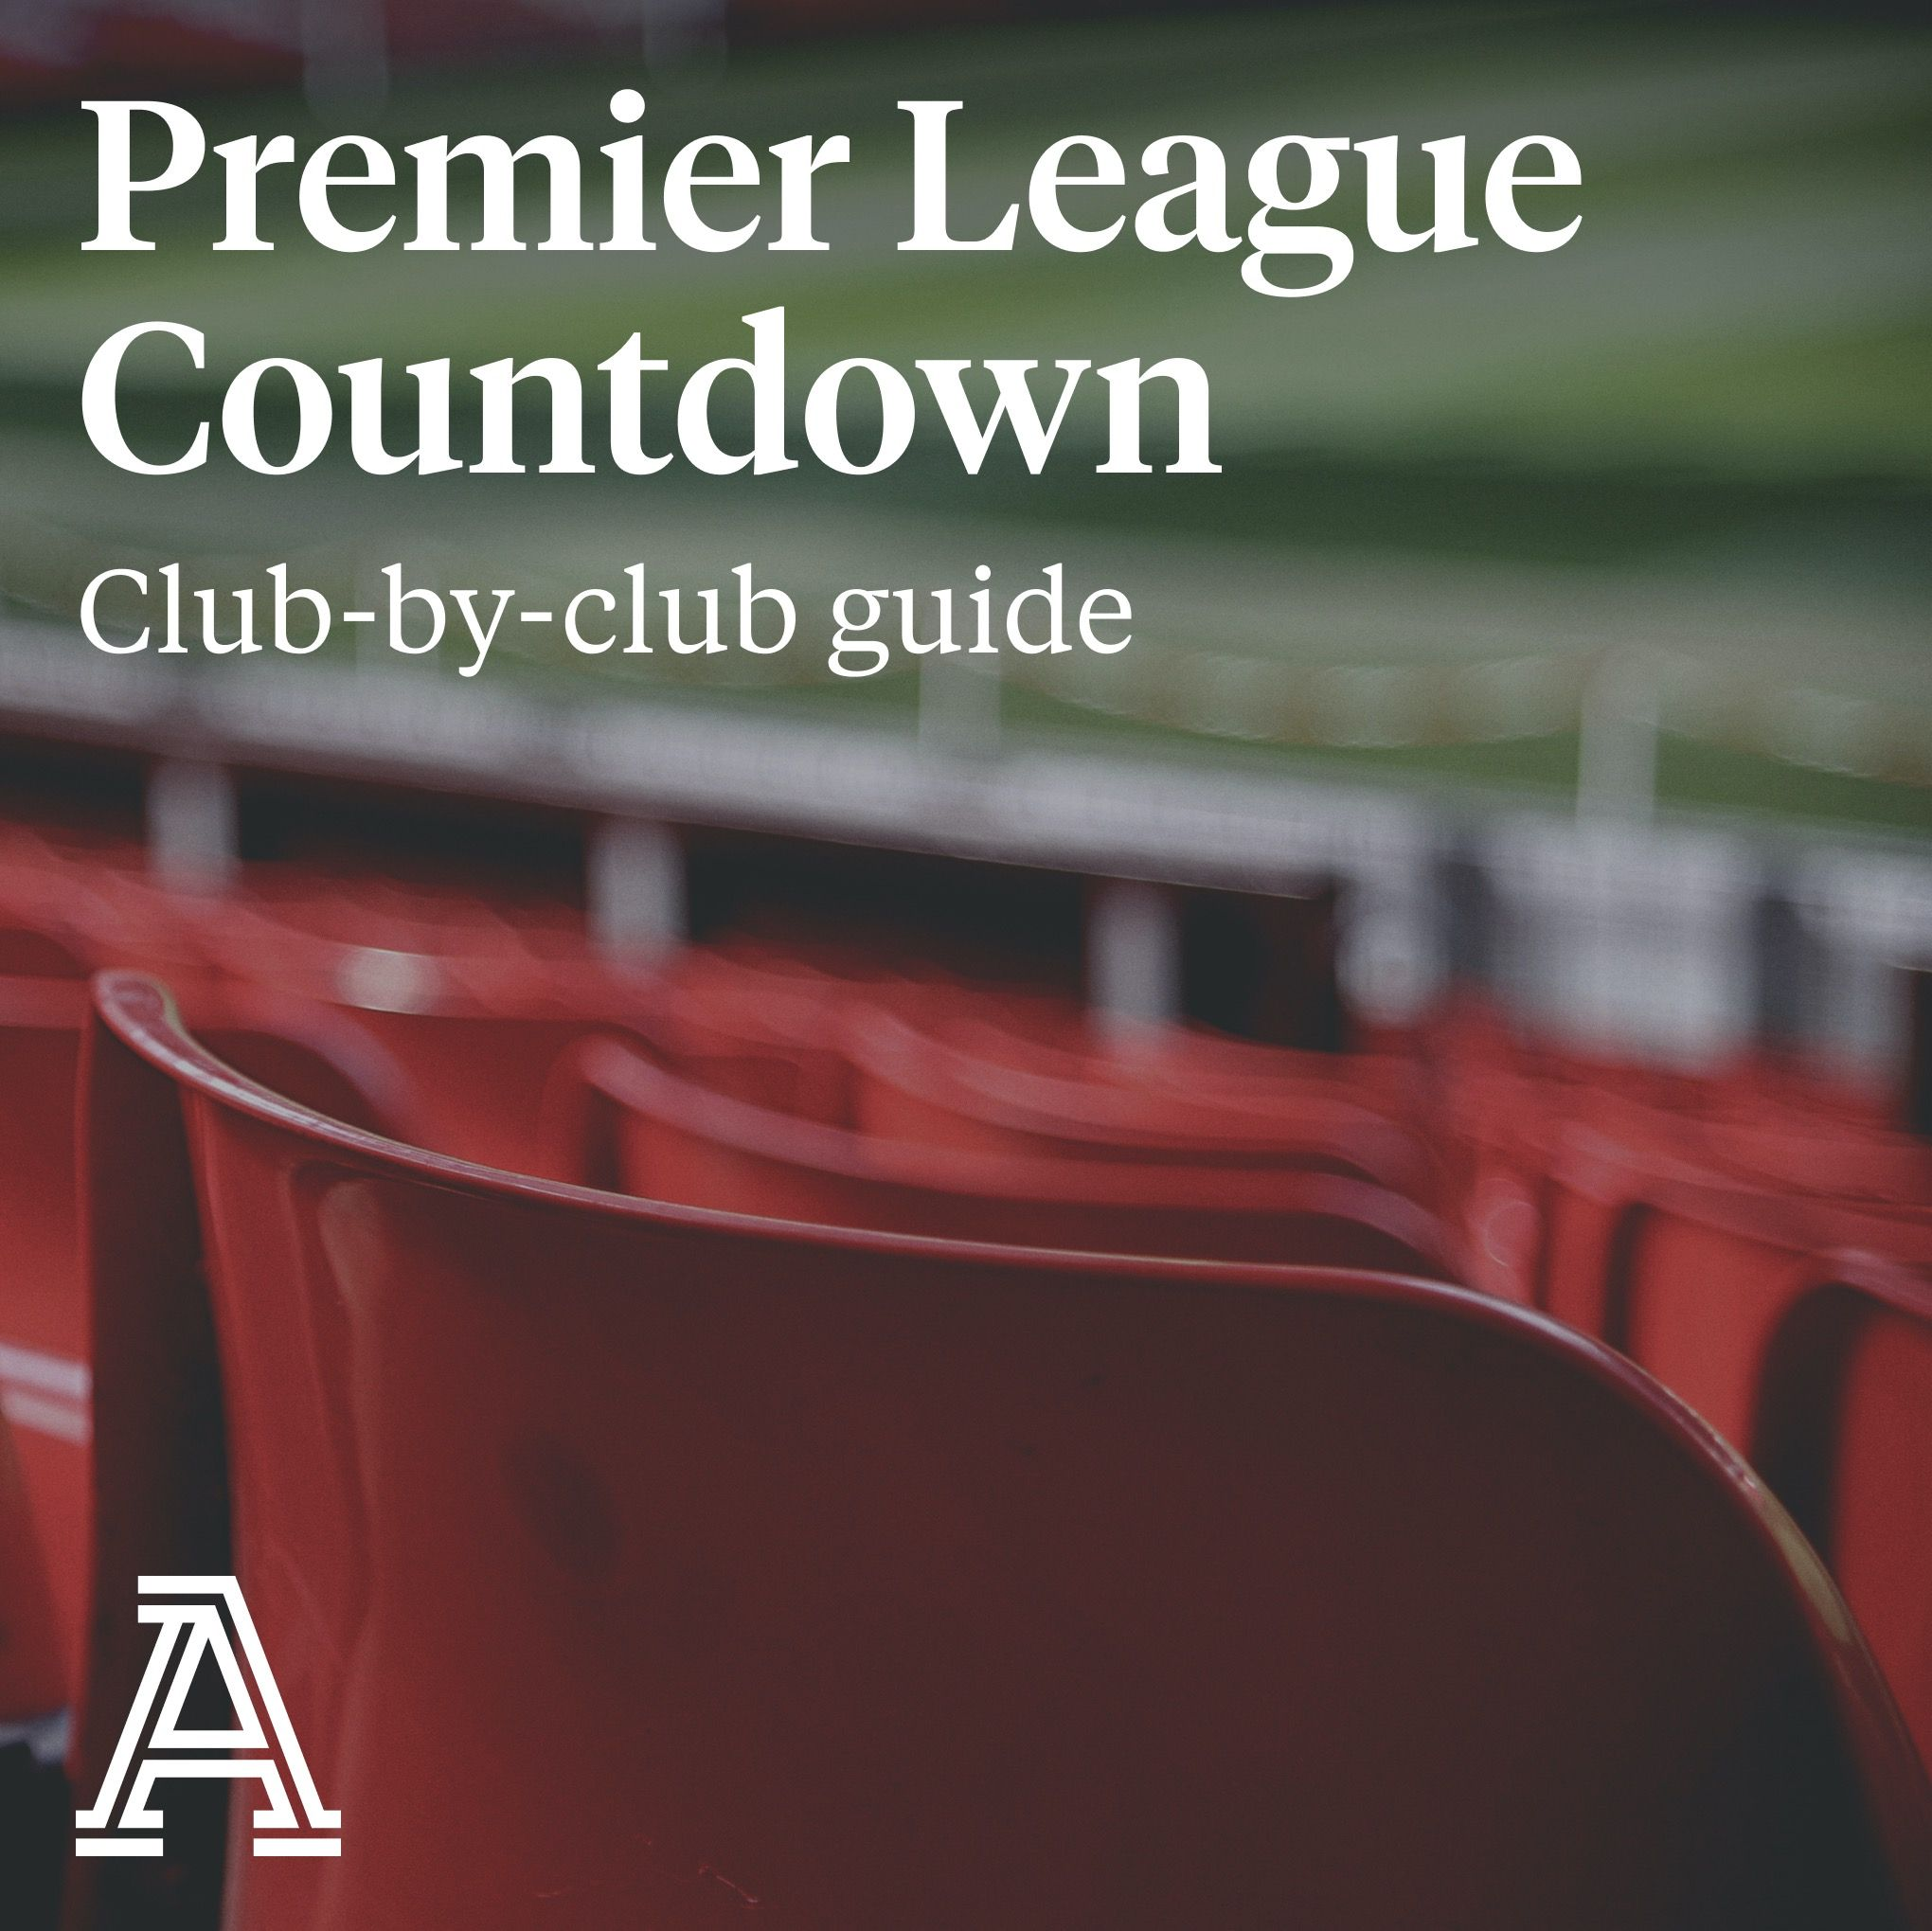 Premier League Countdown - Sheffield United